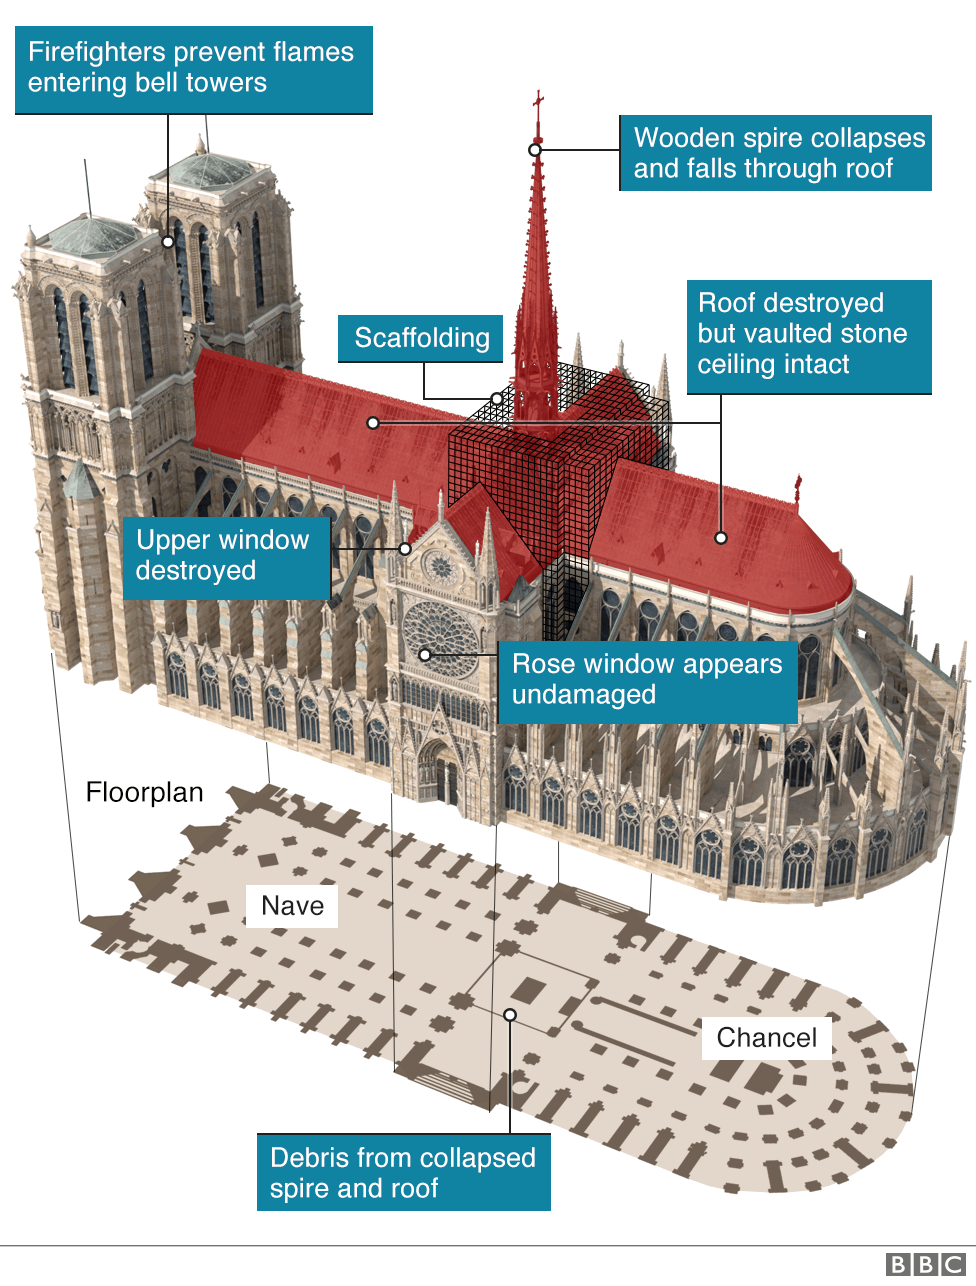 Graphic showing 3d image of Notre Dame highlighting roof and spire which have been destroyed